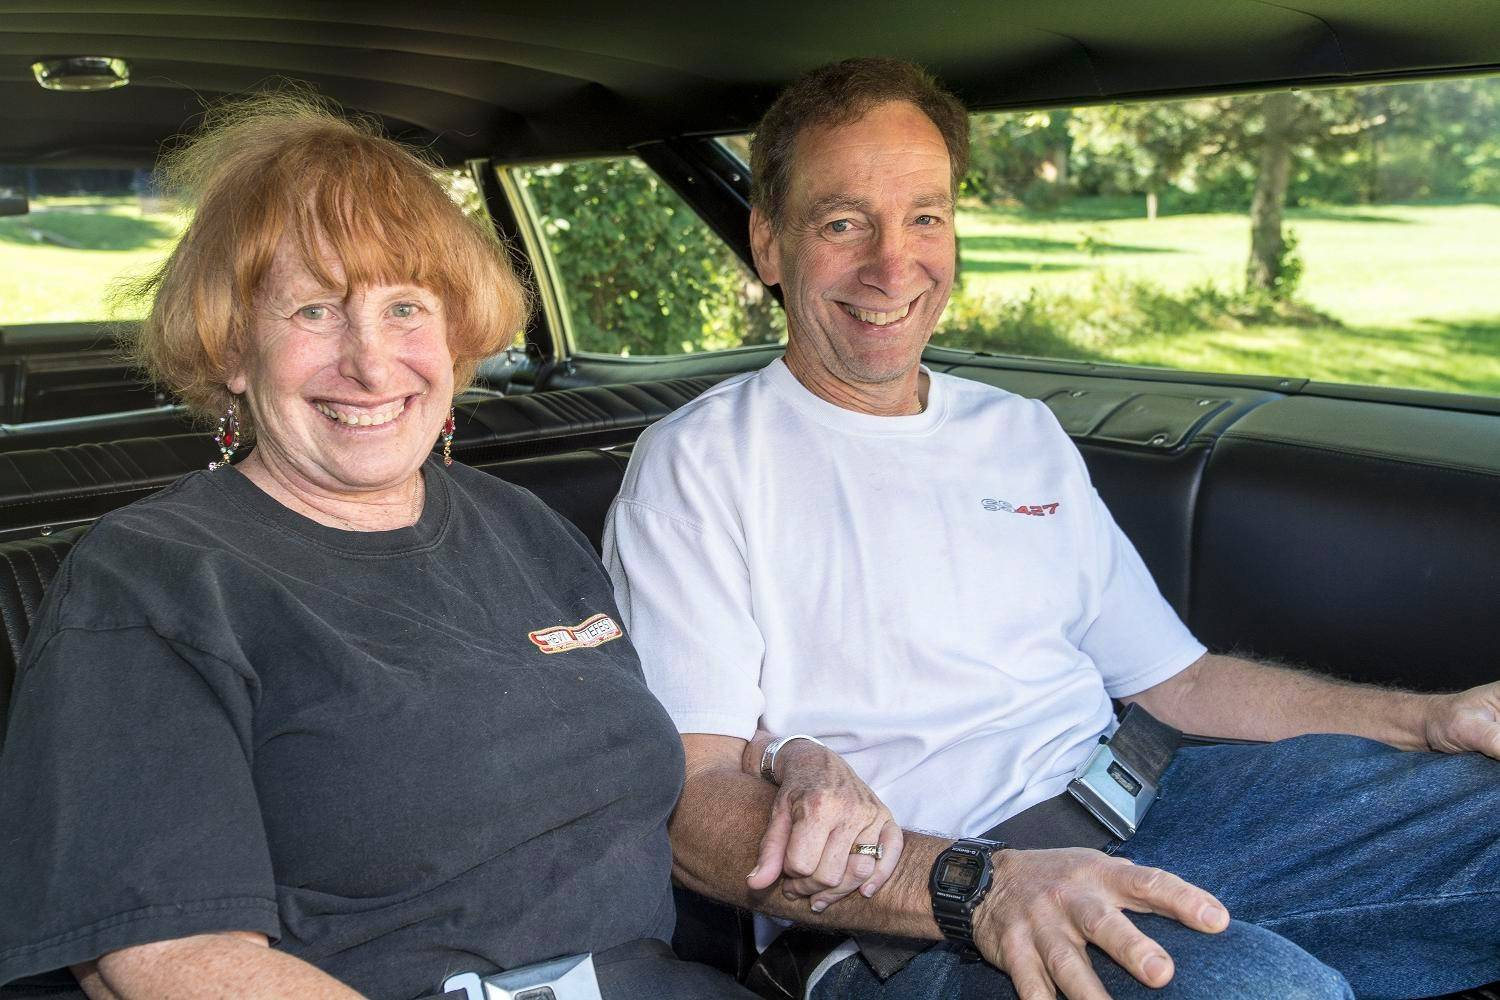 Arnold and Barb Boris of Kildeer enjoy cruising in their vintage family wagon.